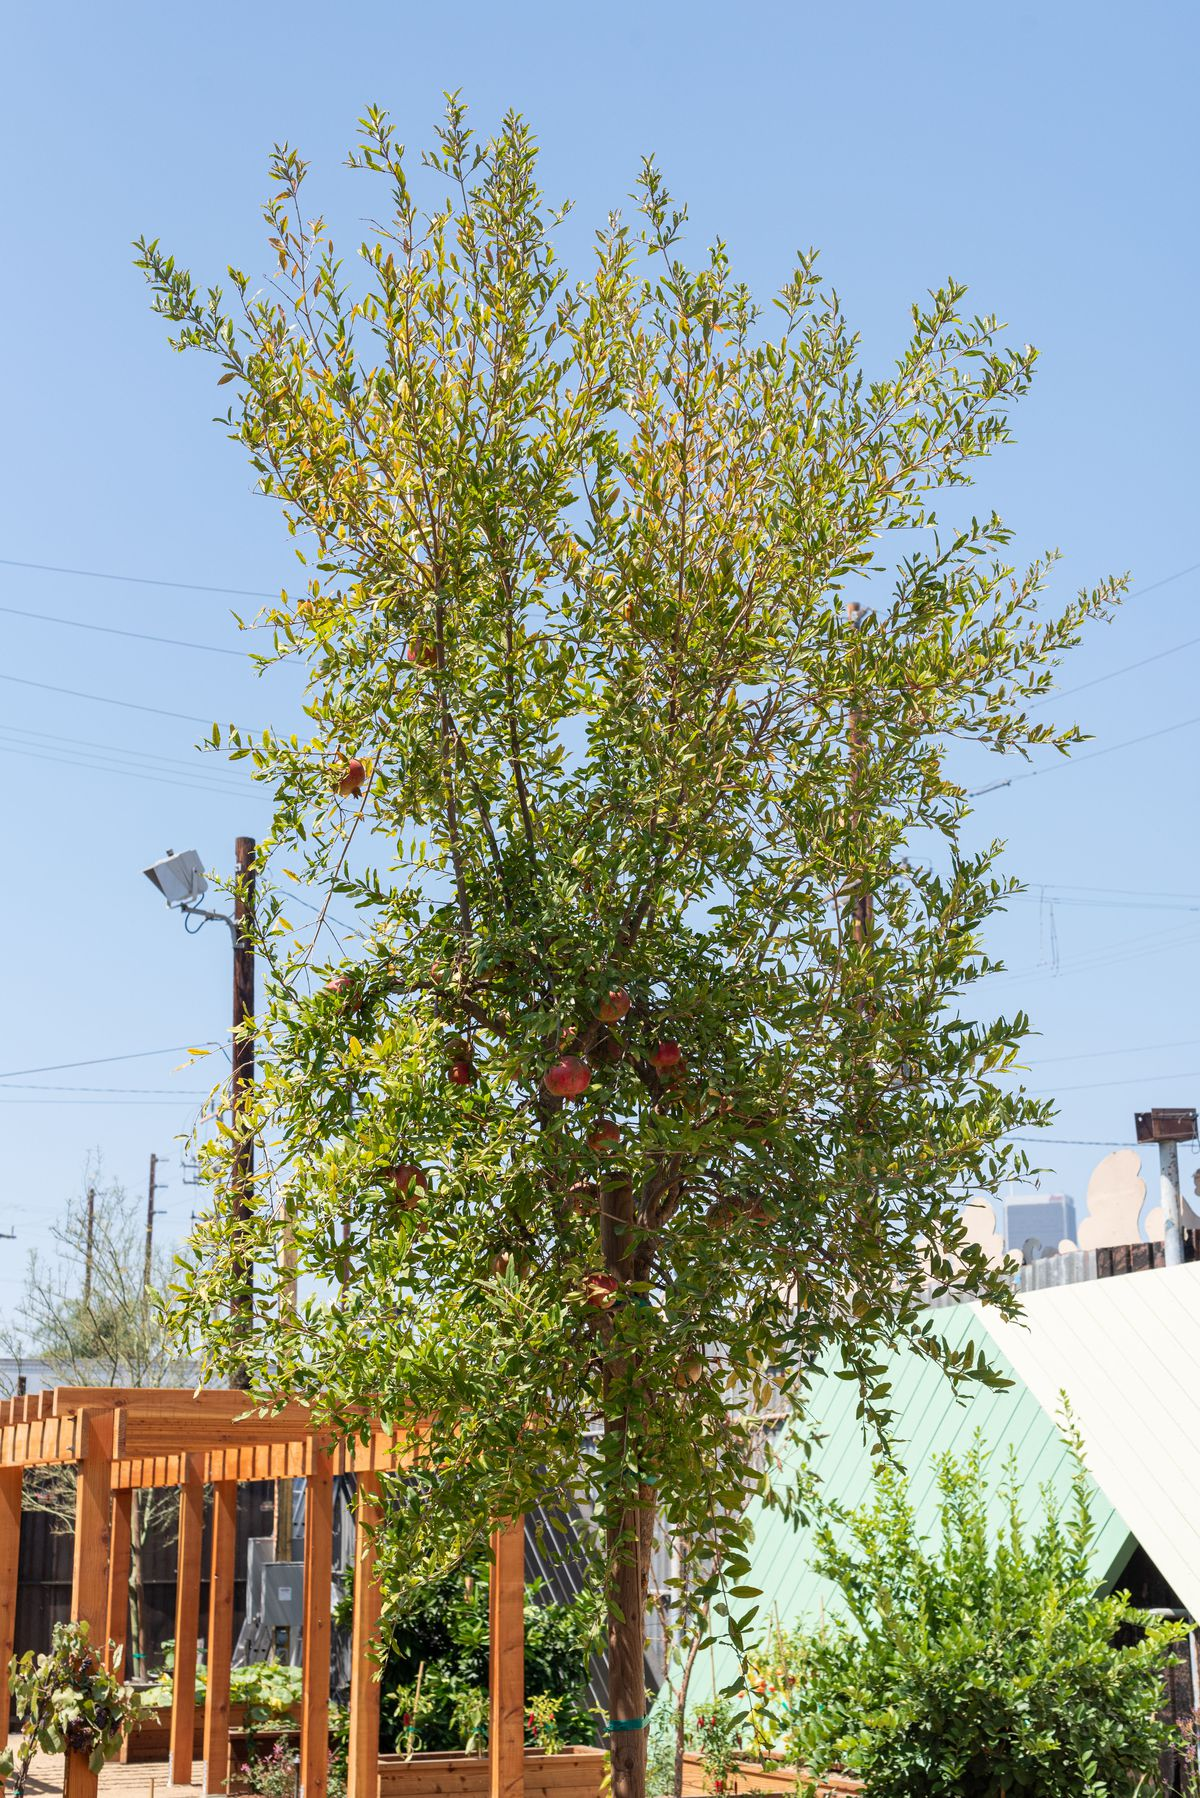 A pomegranate tree tilted to the sky in the summer sun.